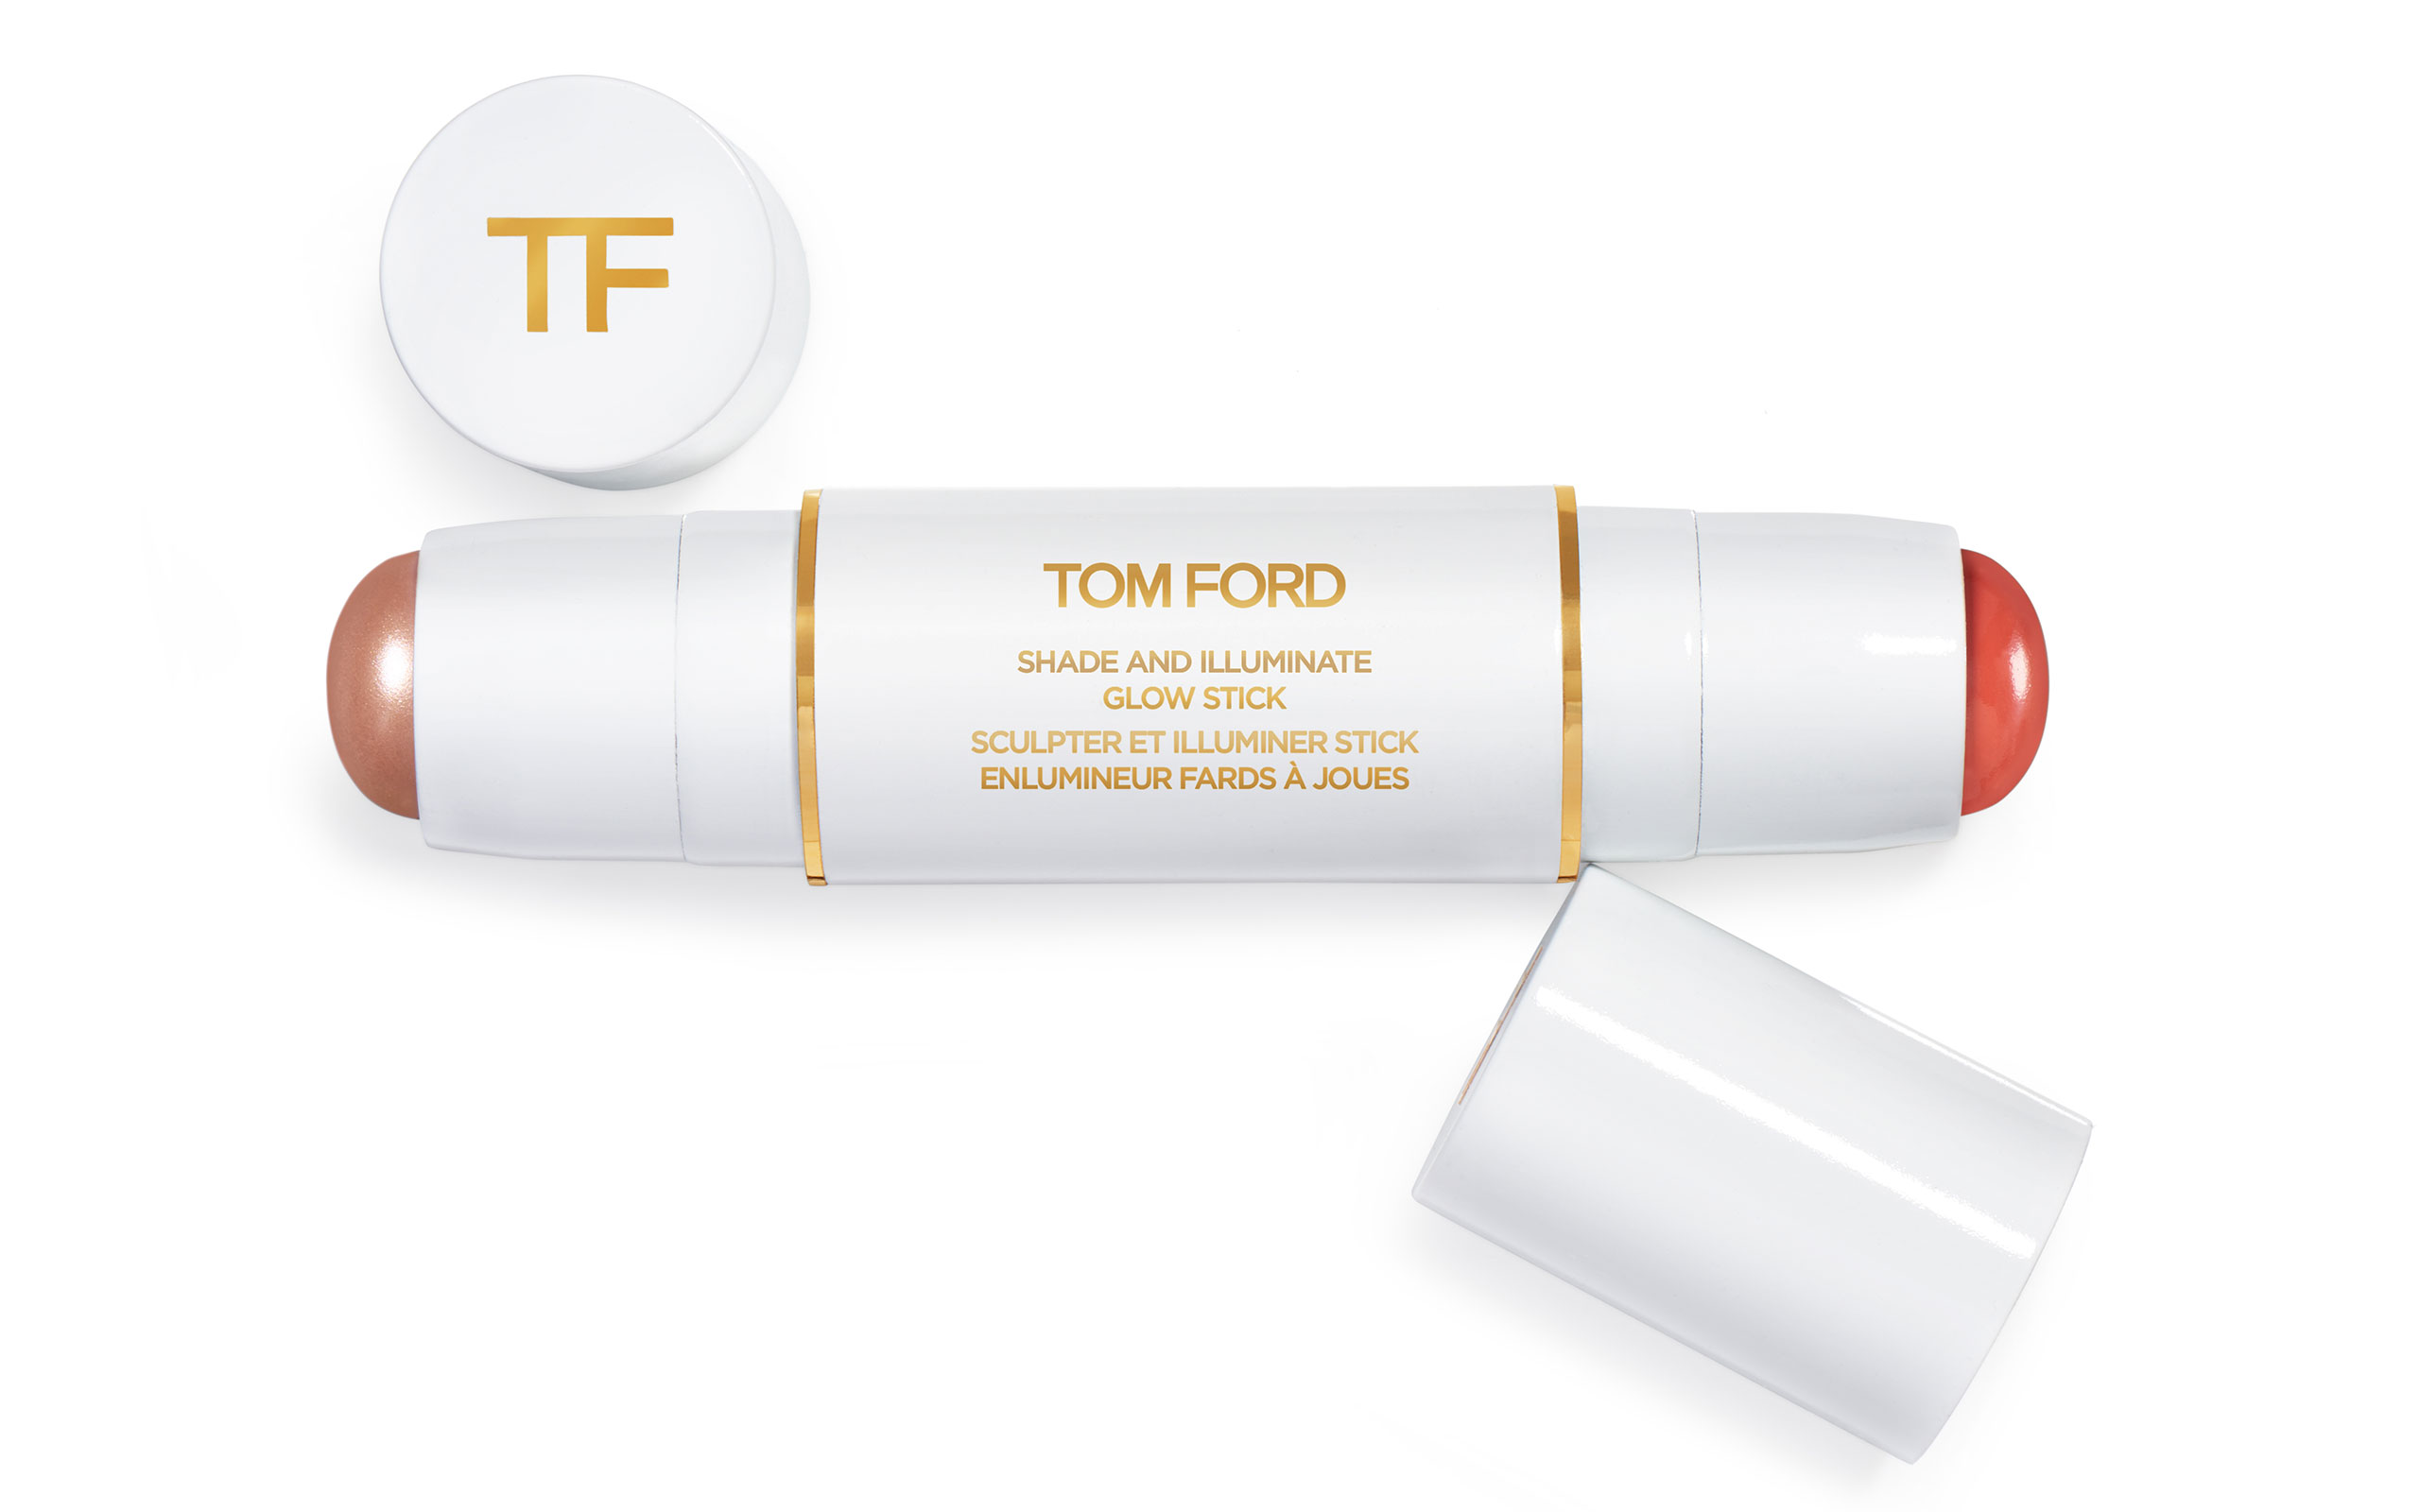 TOM FORD BEAUTY Launched Soleil Summer Collection